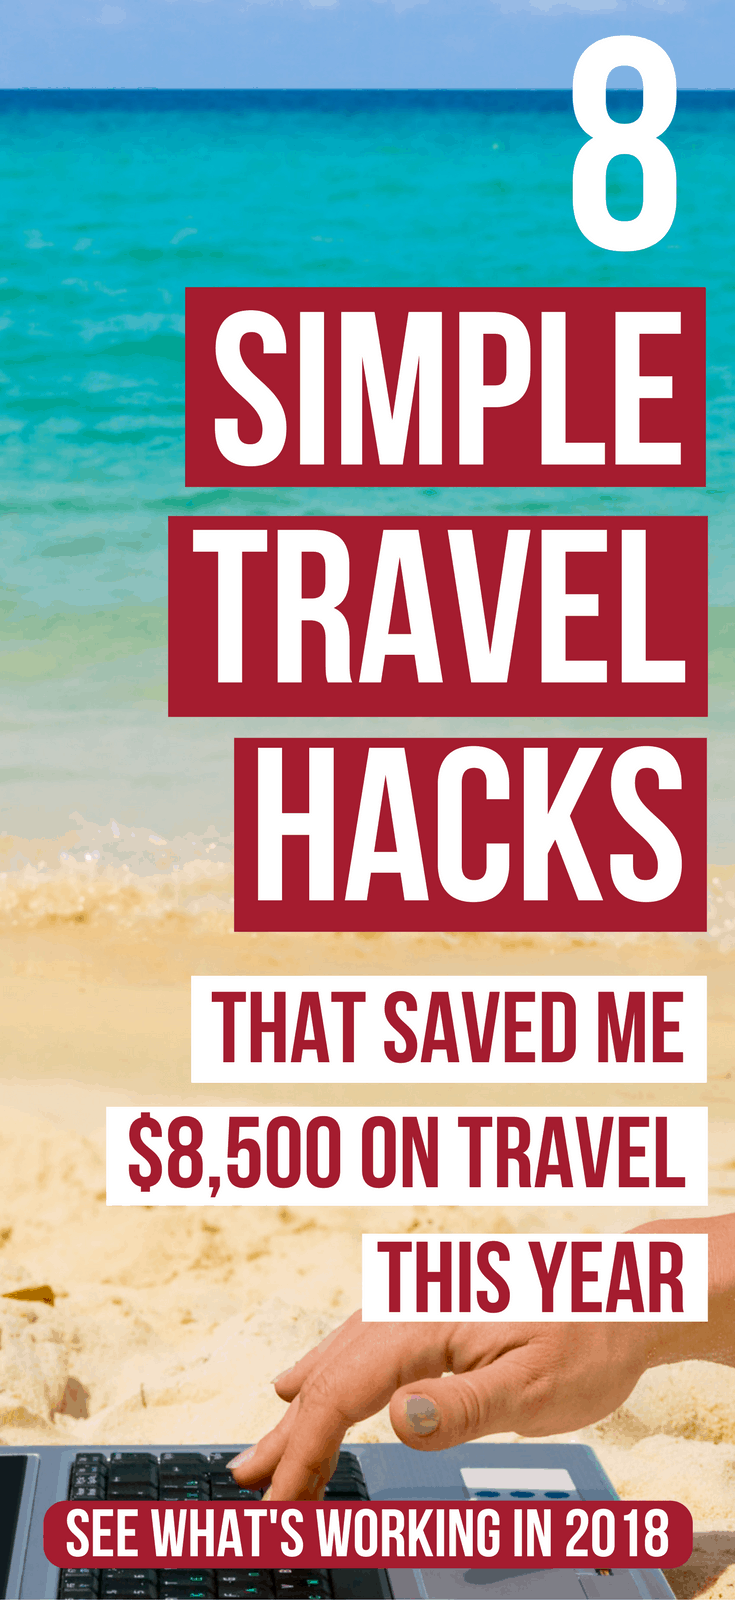 8 Travel hacks that save money. Discover 8 different ways to maximize your credit card points to travel for less (A LOT LESS). travel hacking tips | budget travel tips | budget travel ideas | save money on travel | saving money traveling | credit card points #travel #travelhacking #budgettravel